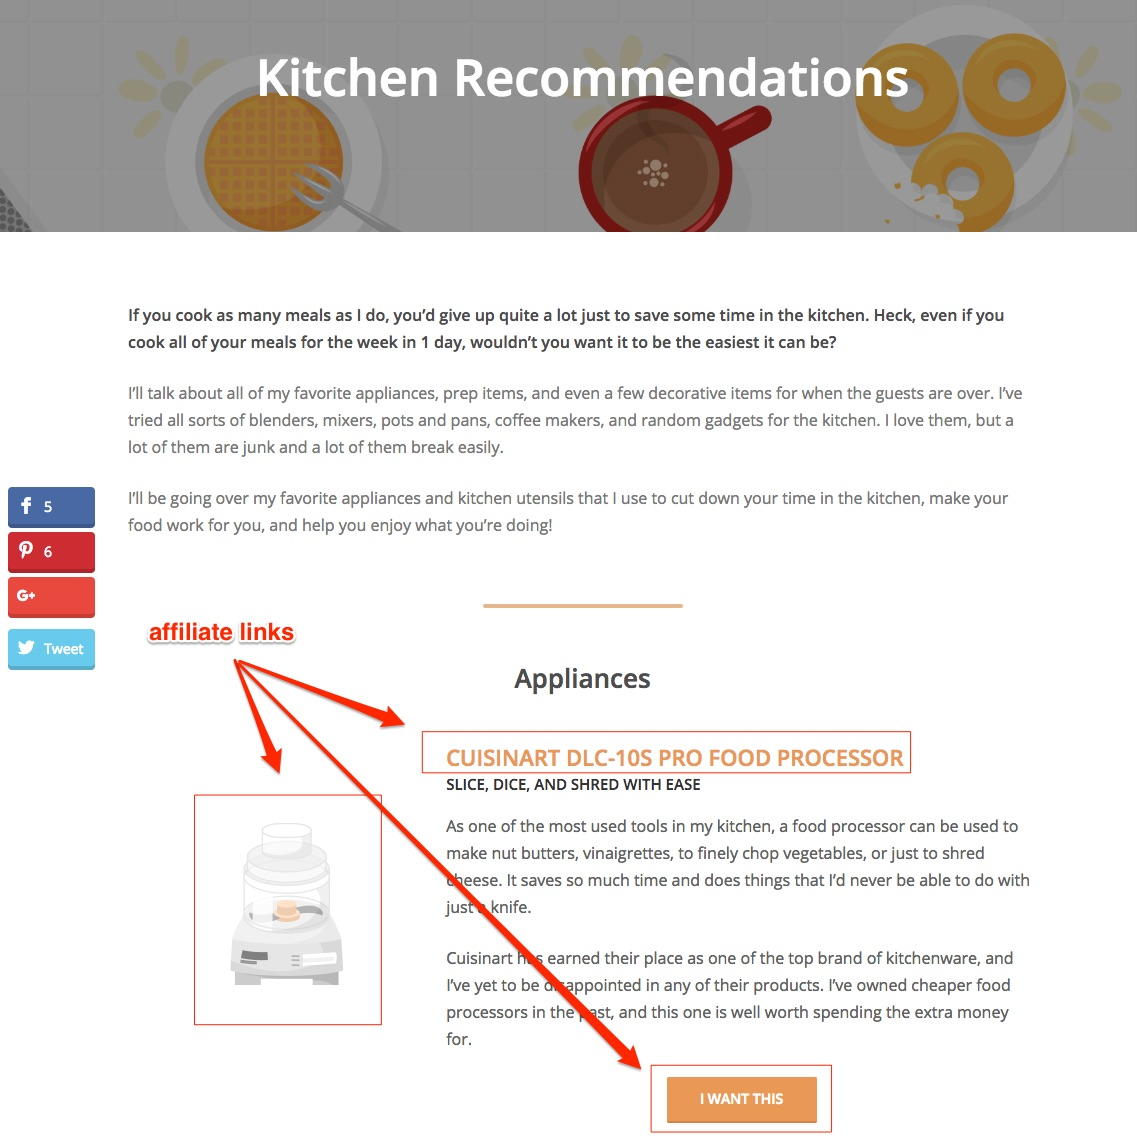 Kitchen Recommendations Ruled Me